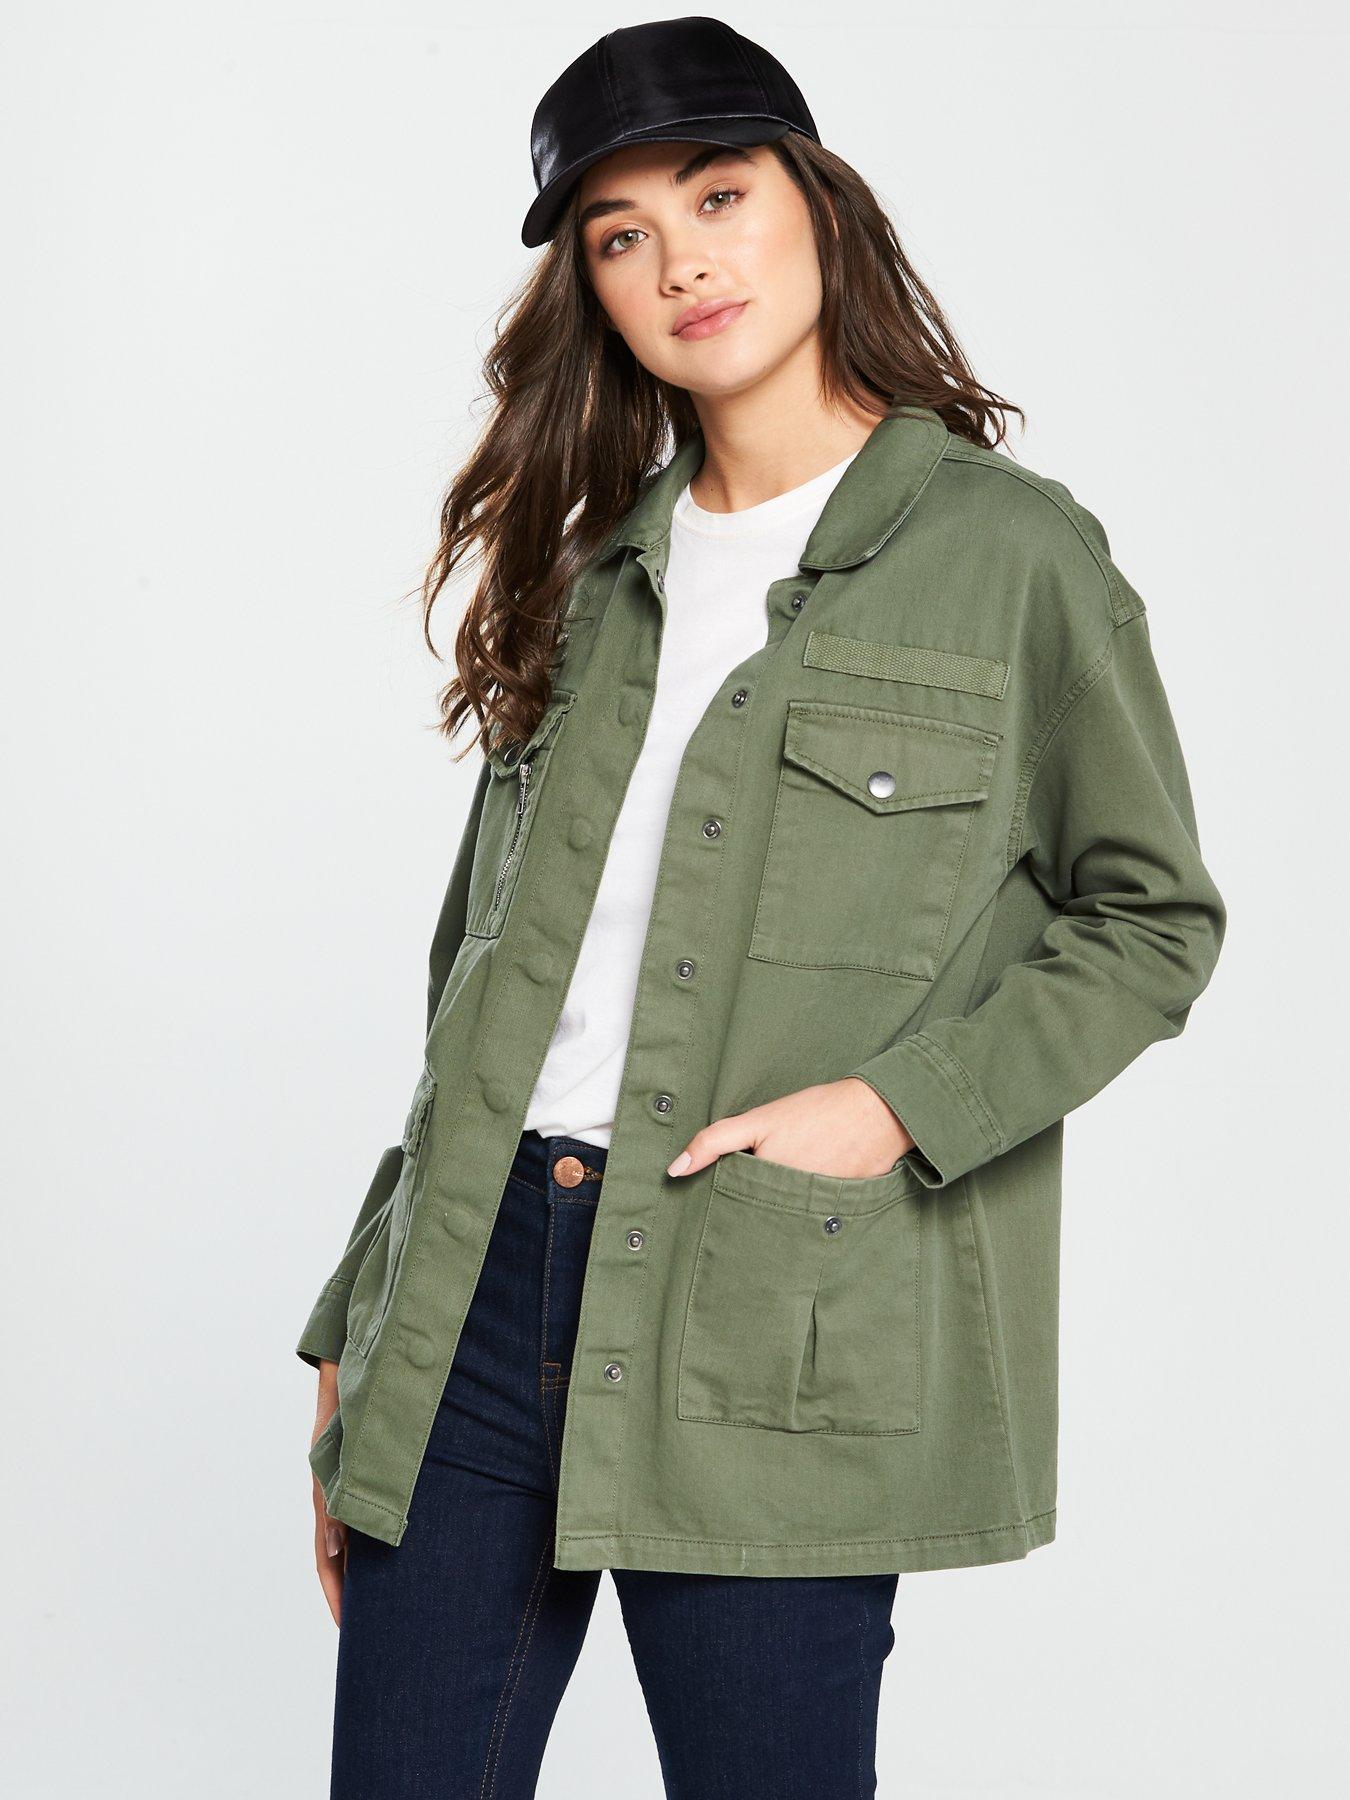 V by Very Patch Pocket Utility Jacket - Khaki